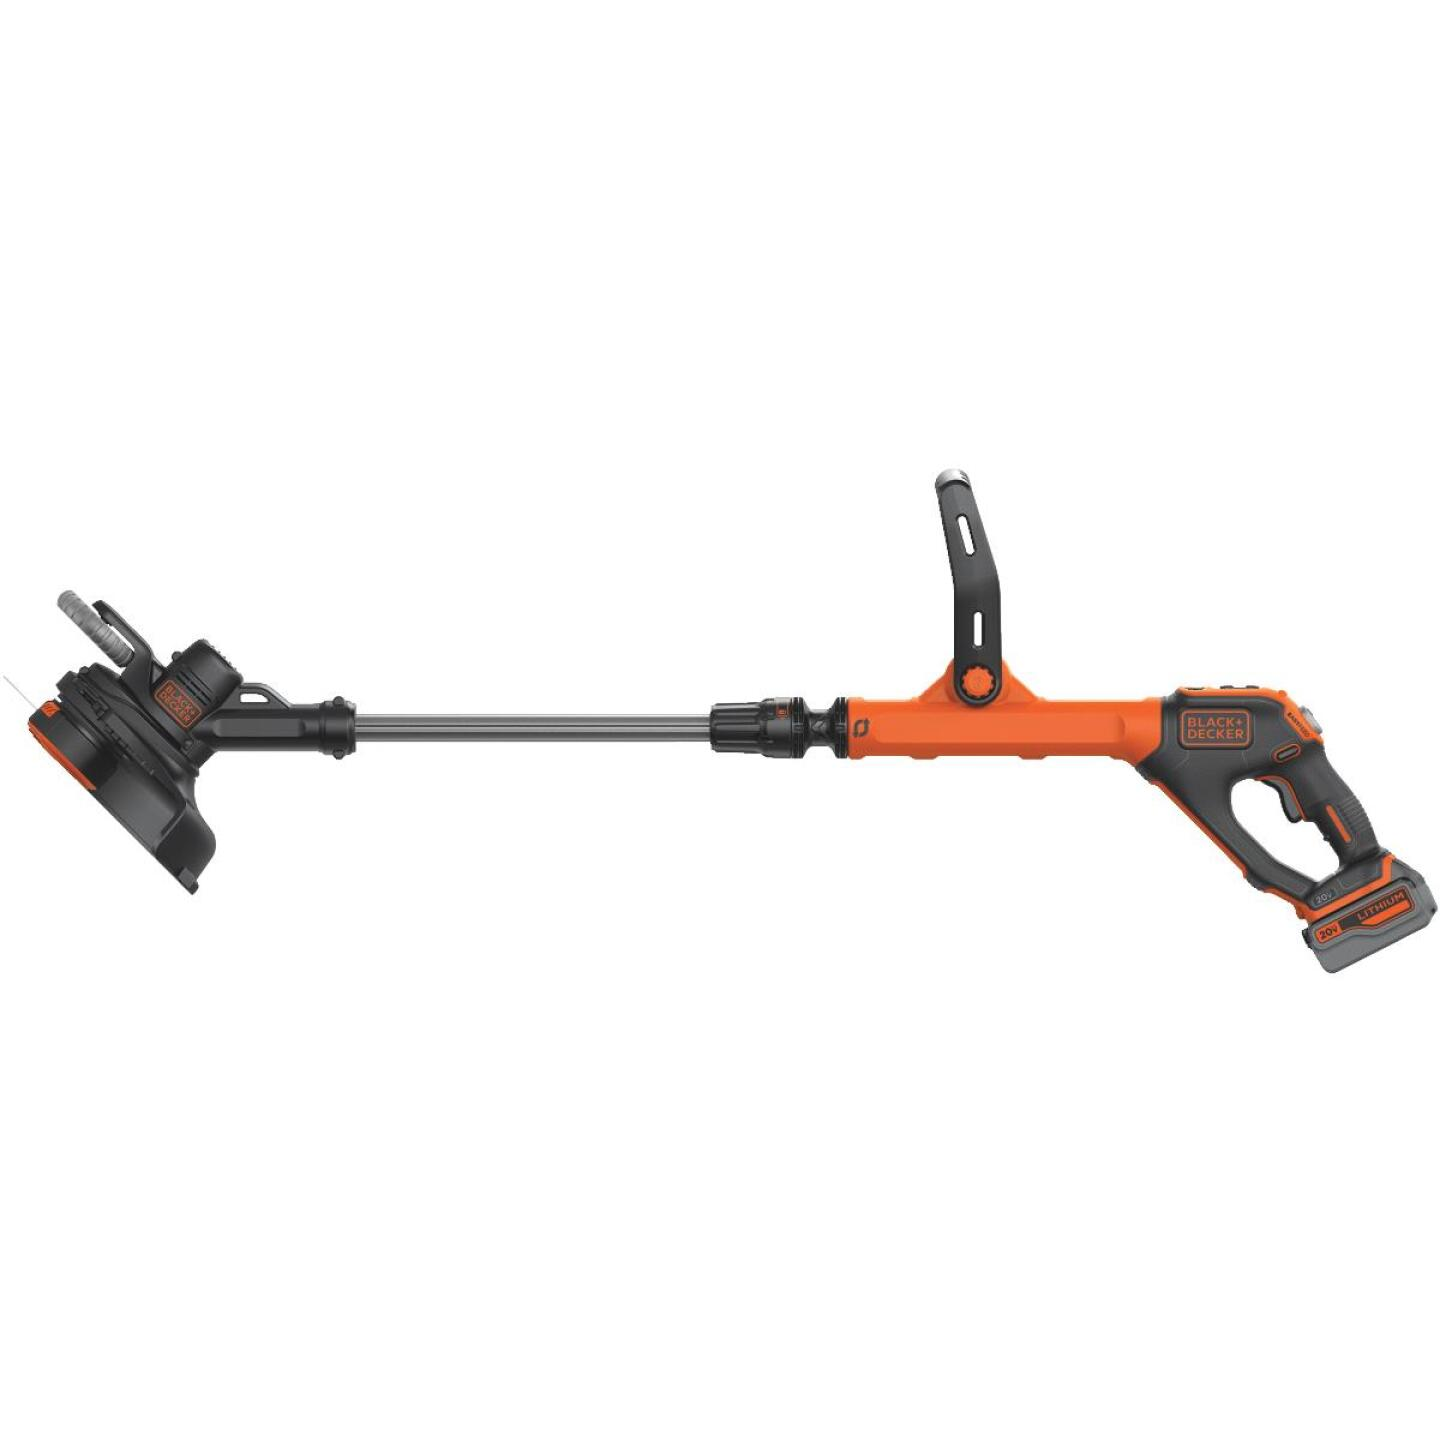 Black & Decker EasyFeed 20V MAX 12 In. Lithium Ion Straight Cordless String Trimmer/Edger Image 3